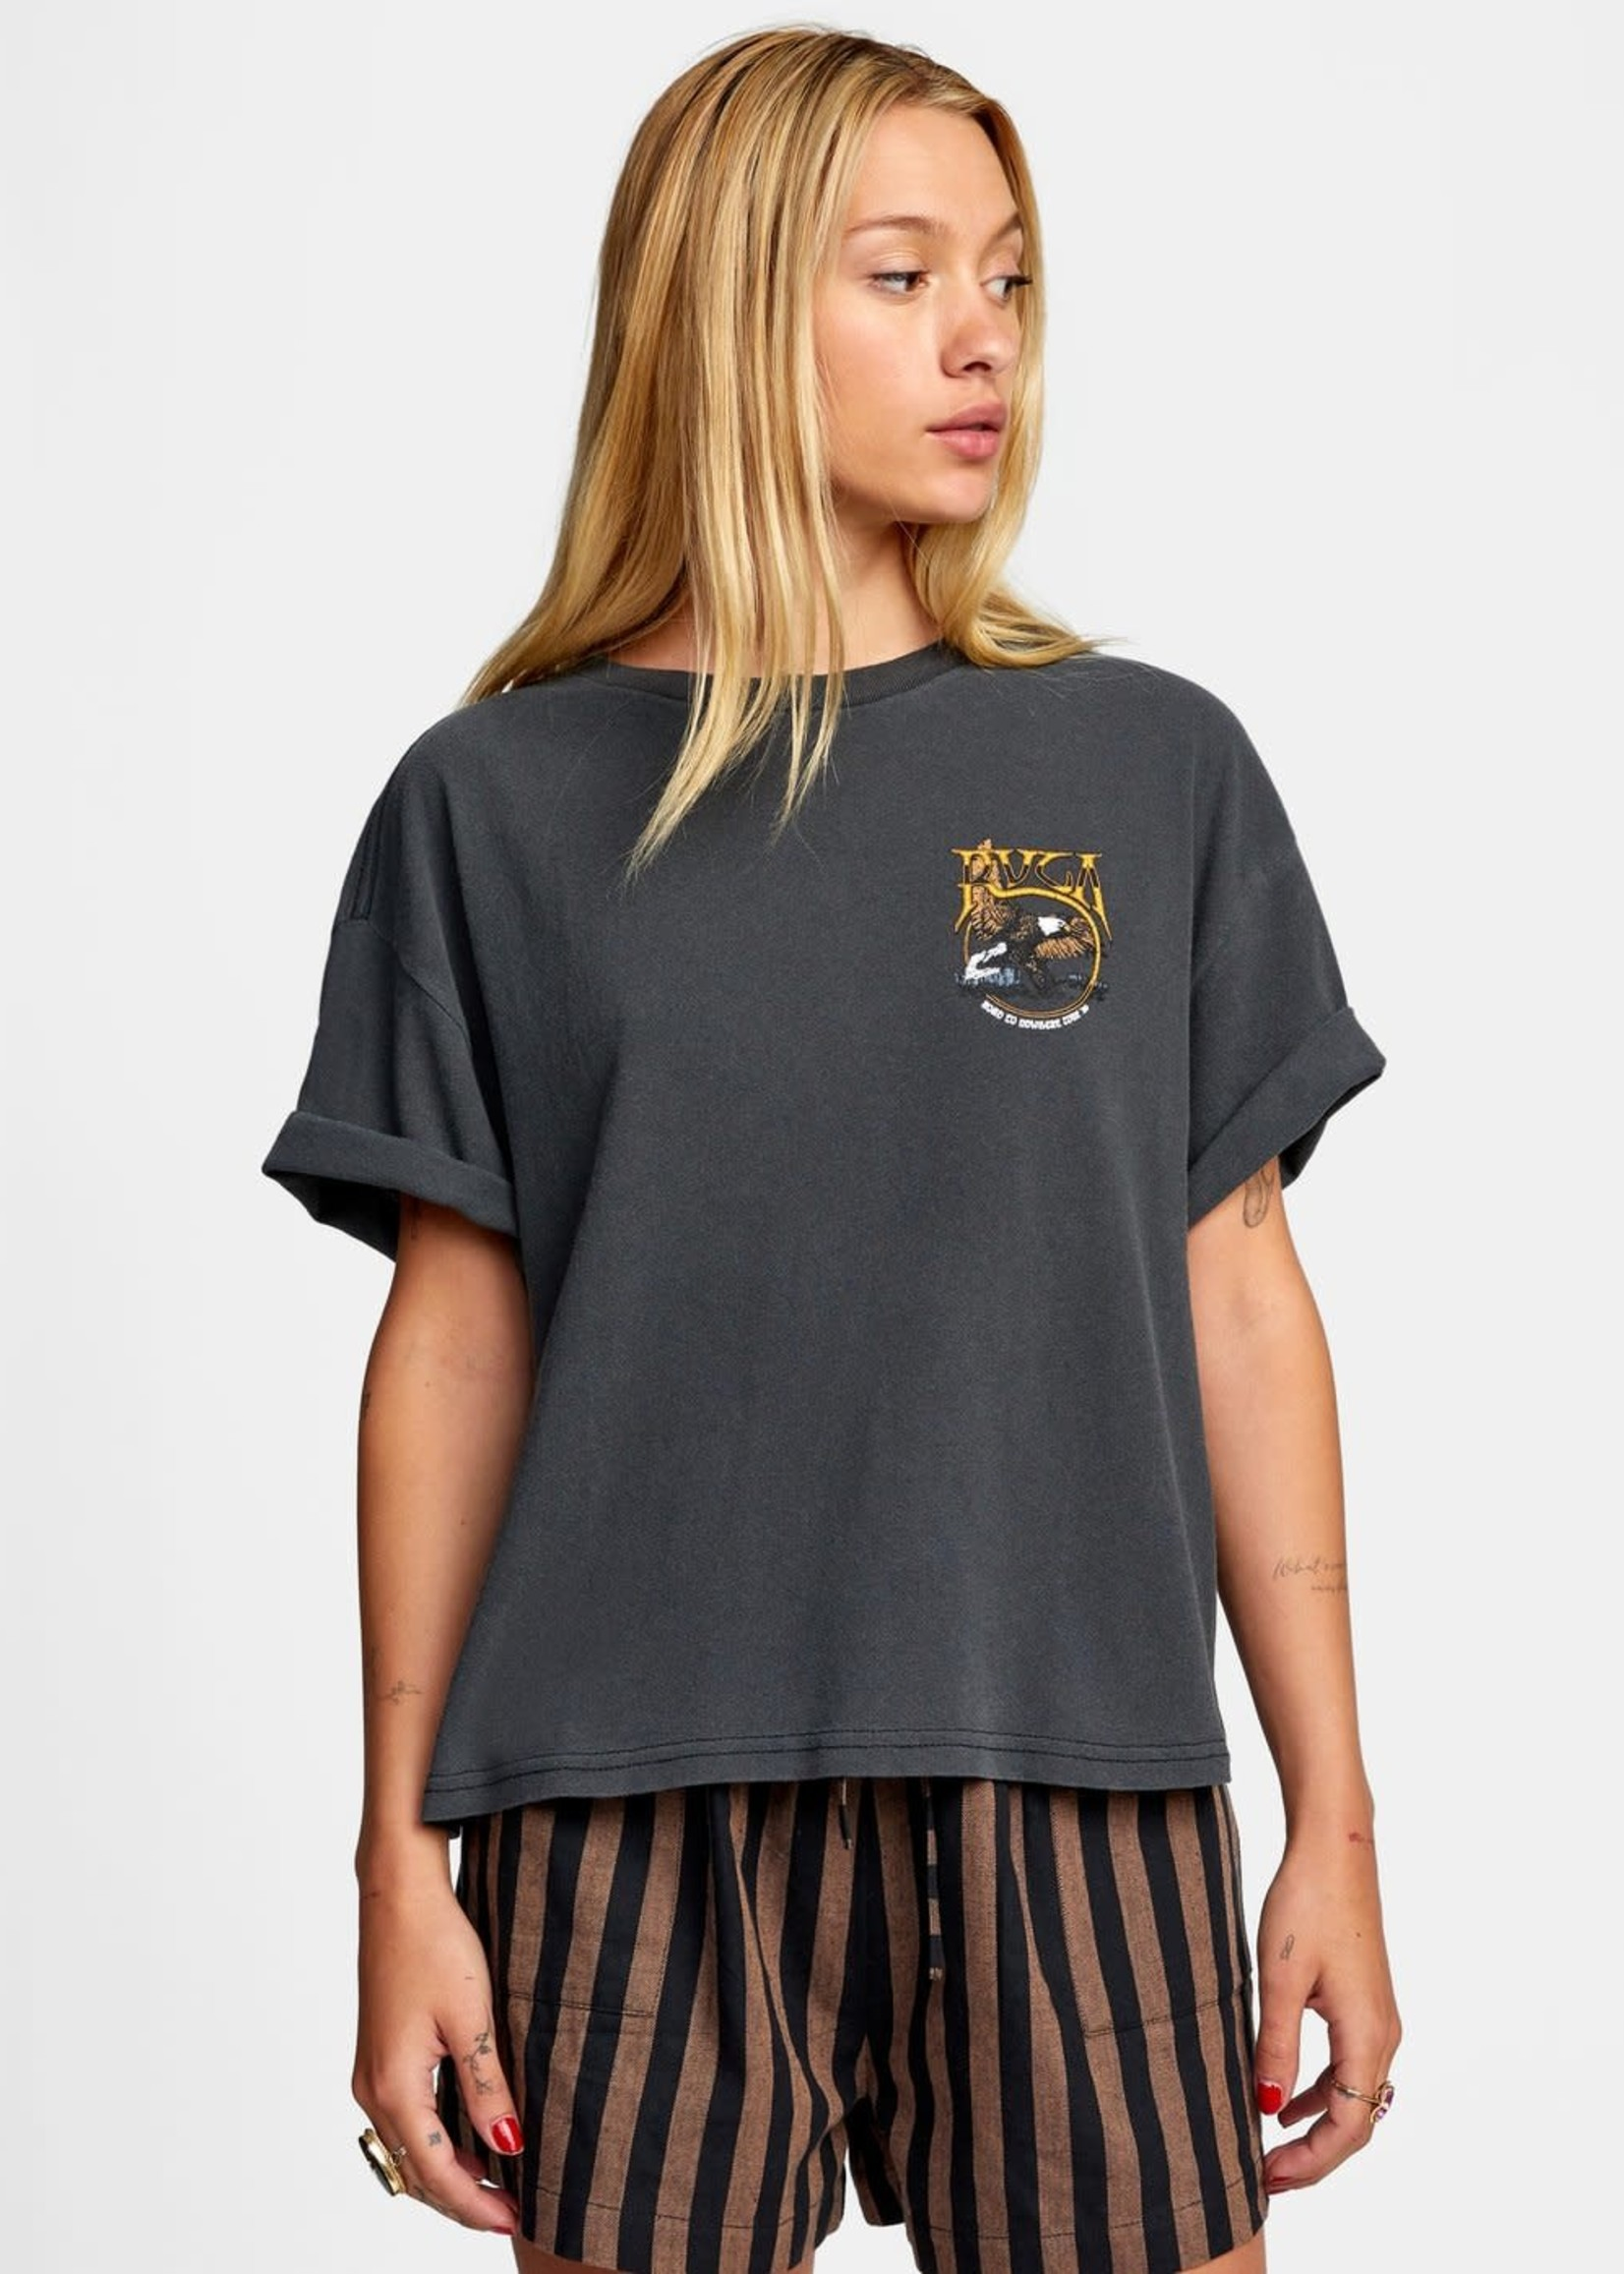 RVCA No Where Short Sleeve Tee